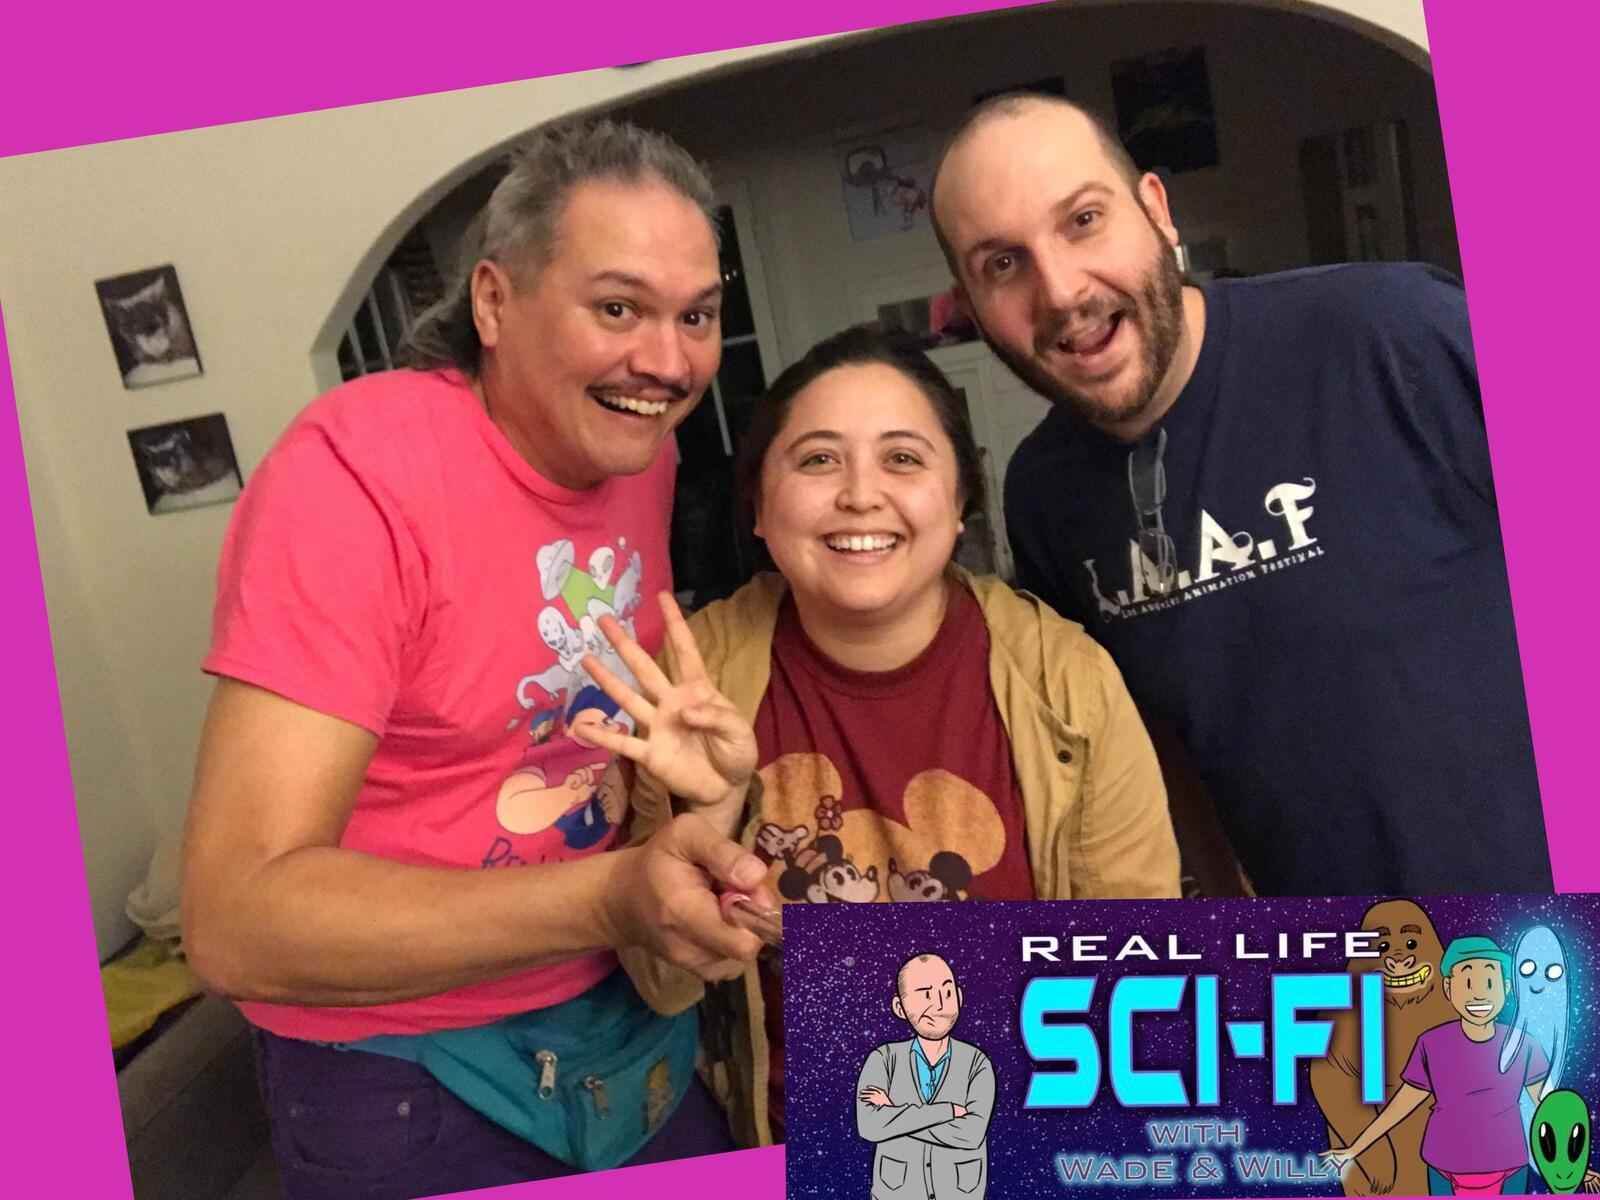 179: Four Years - What the Hell? with Erin Pearce